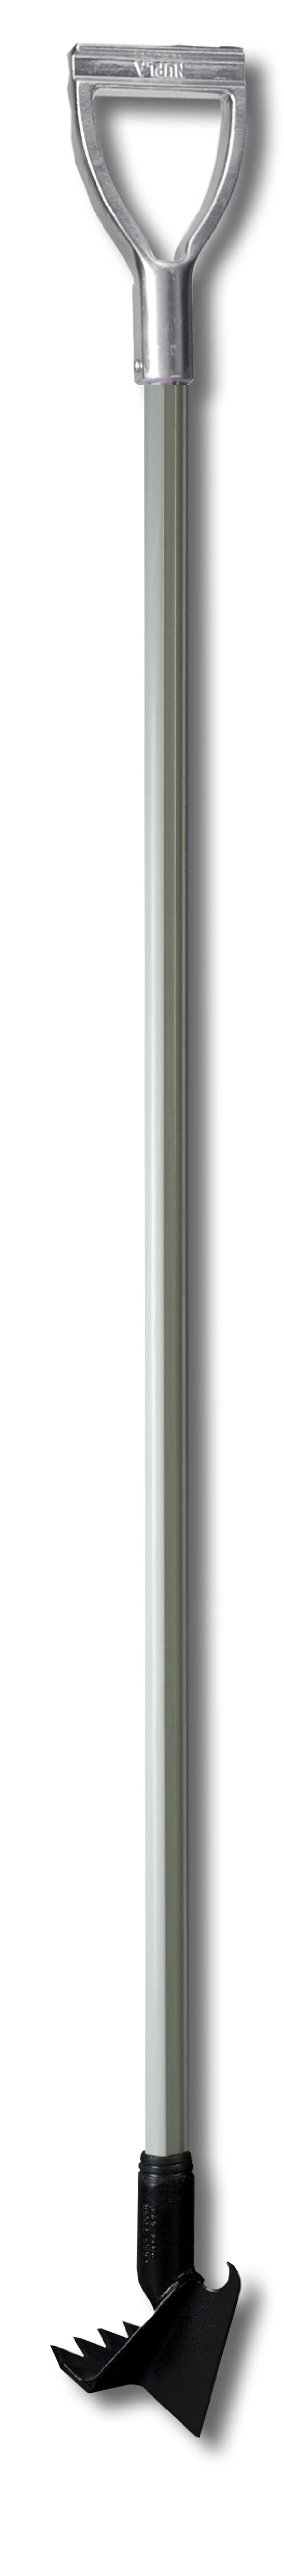 Nupla CWH-6SDA Super Duty I-Beam Ceiling Hook Pole with Aluminum D Grip, 6' Length by Nupla